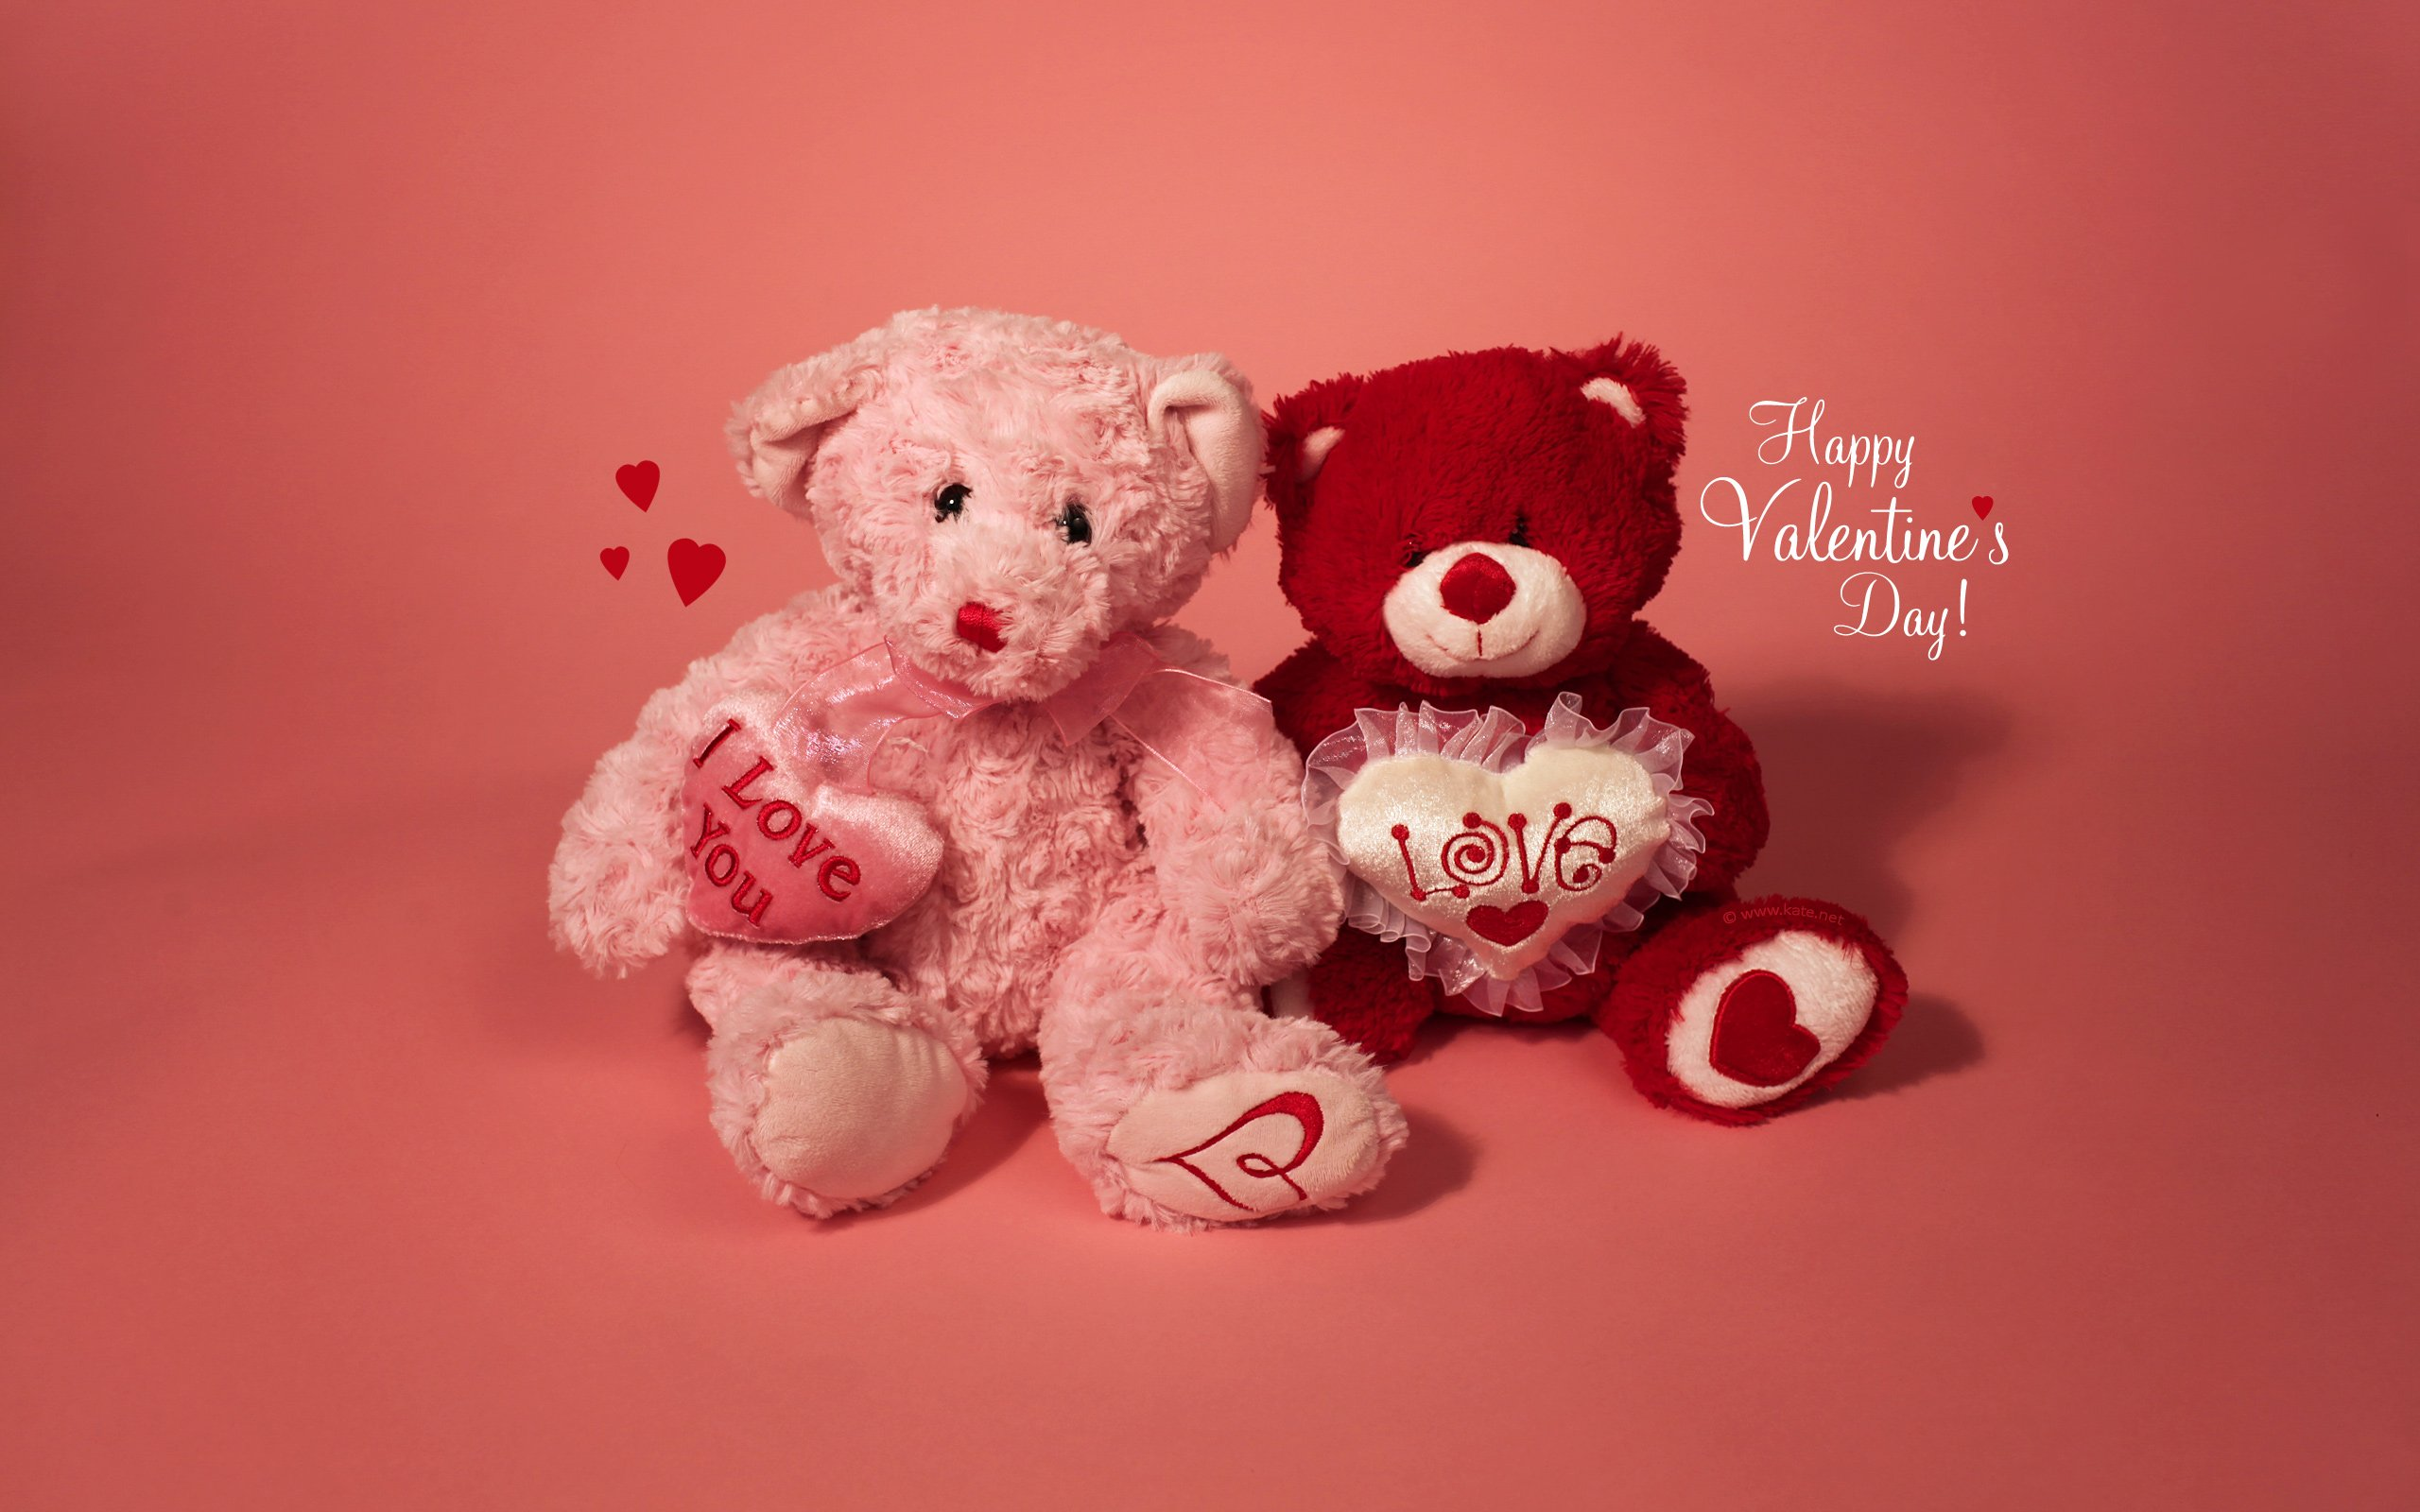 Valentines Day Wallpapers Desktop Backgrounds by Katenet 2560x1600